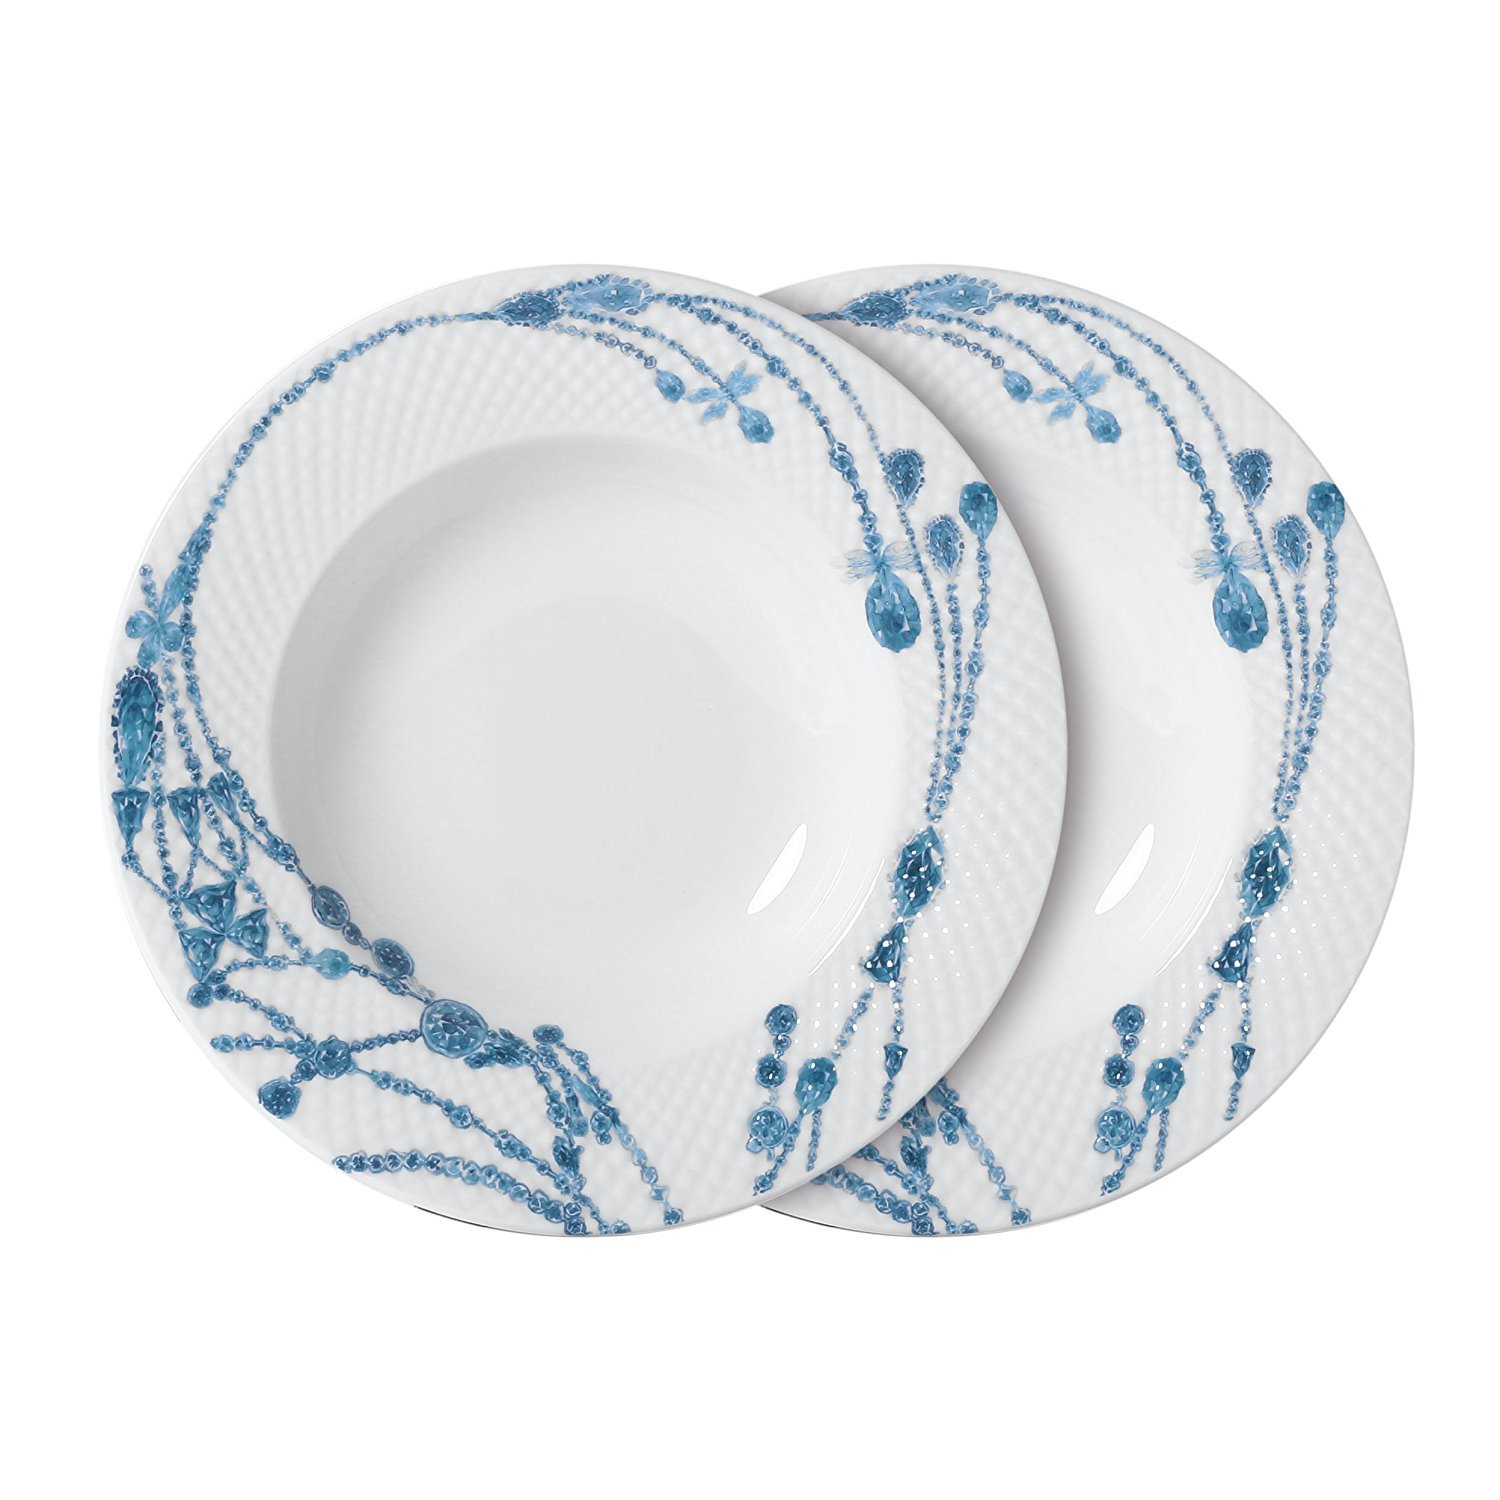 DoubleBlue 9'' Rounded Dinner Soup Plate (Set of 2) Bone China Microwaves for home restaurant hotel - Diamond pattern, White and Blue